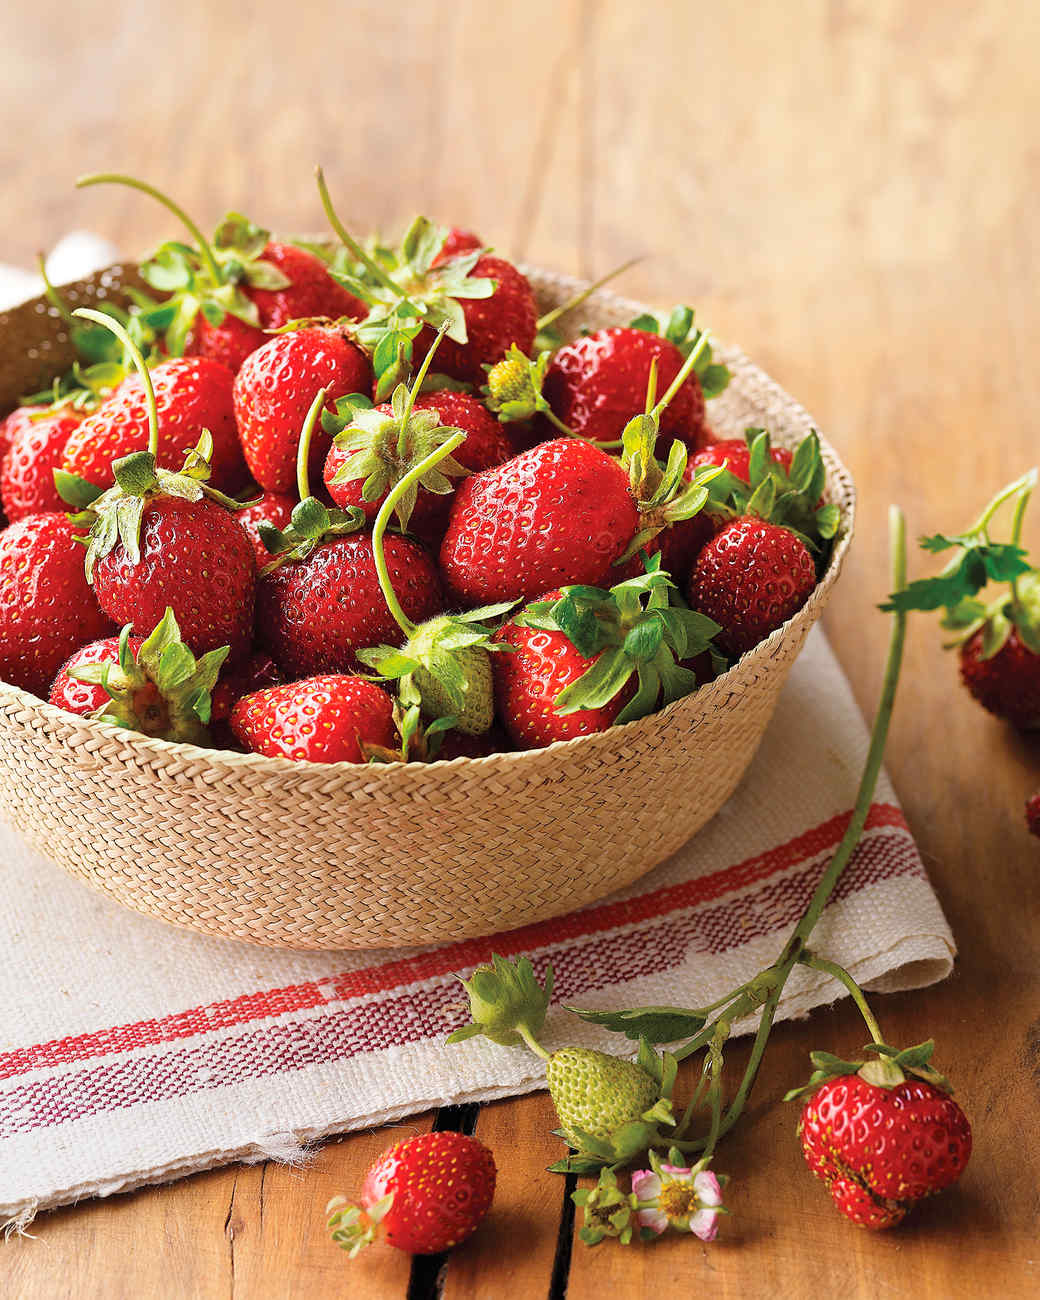 Our Most Spectacular Strawberry Recipes